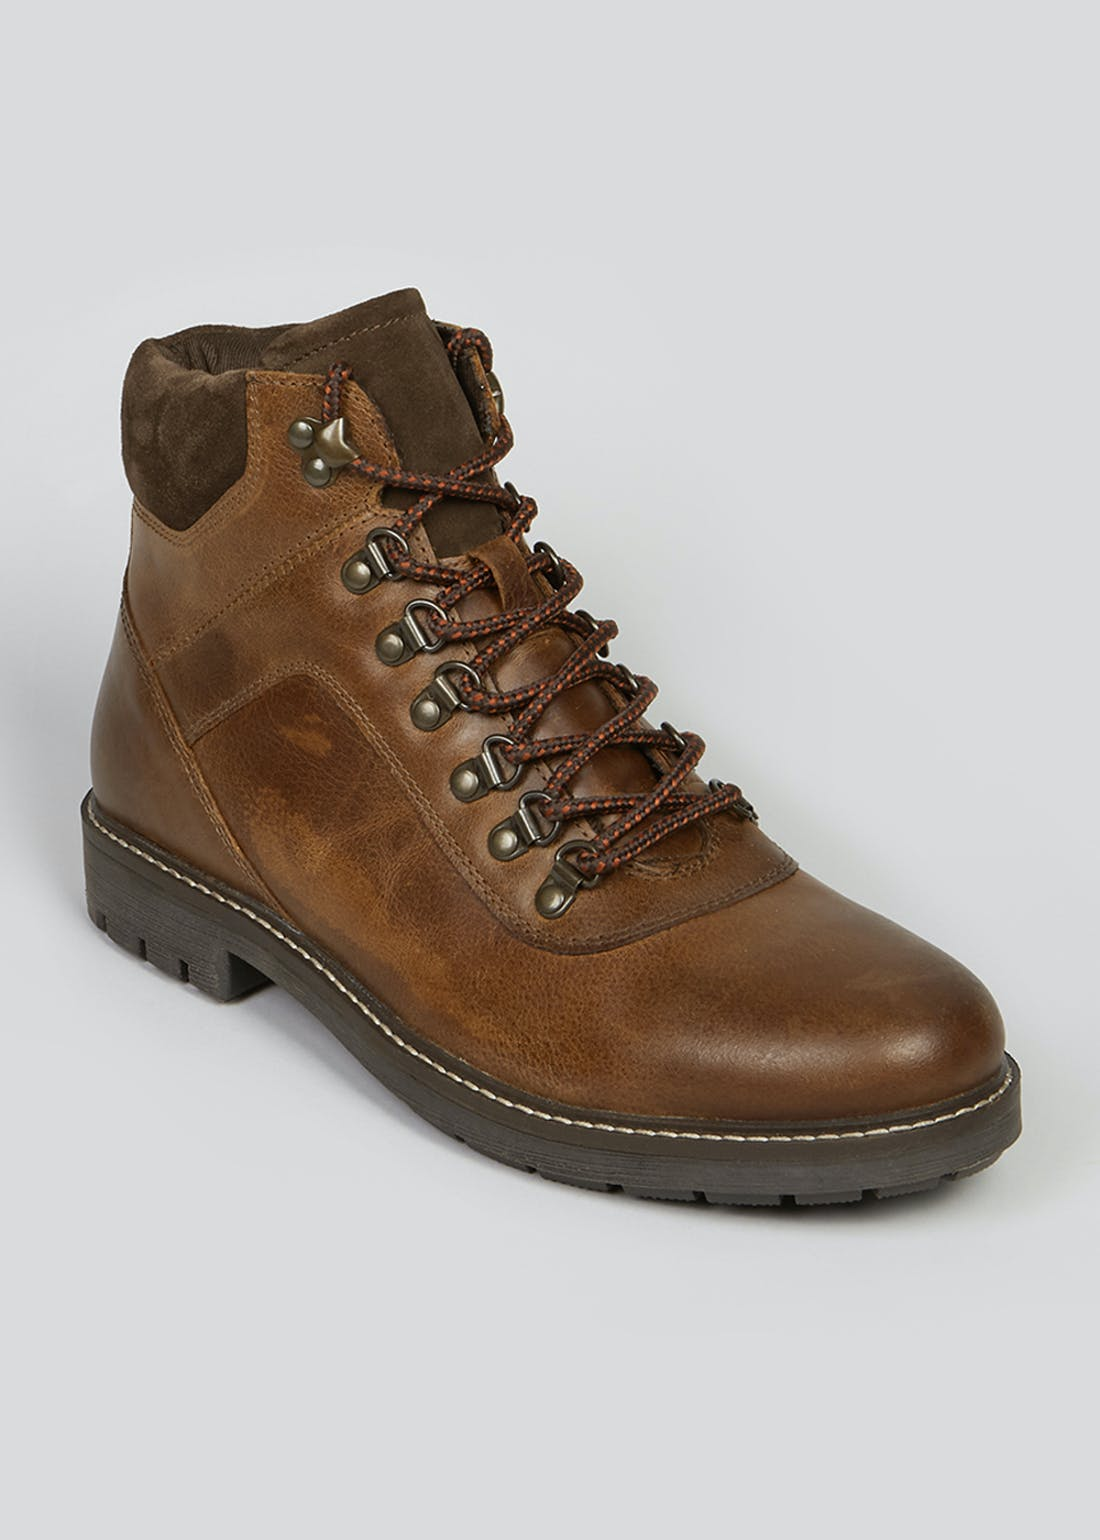 Brown Leather Hiker Boots